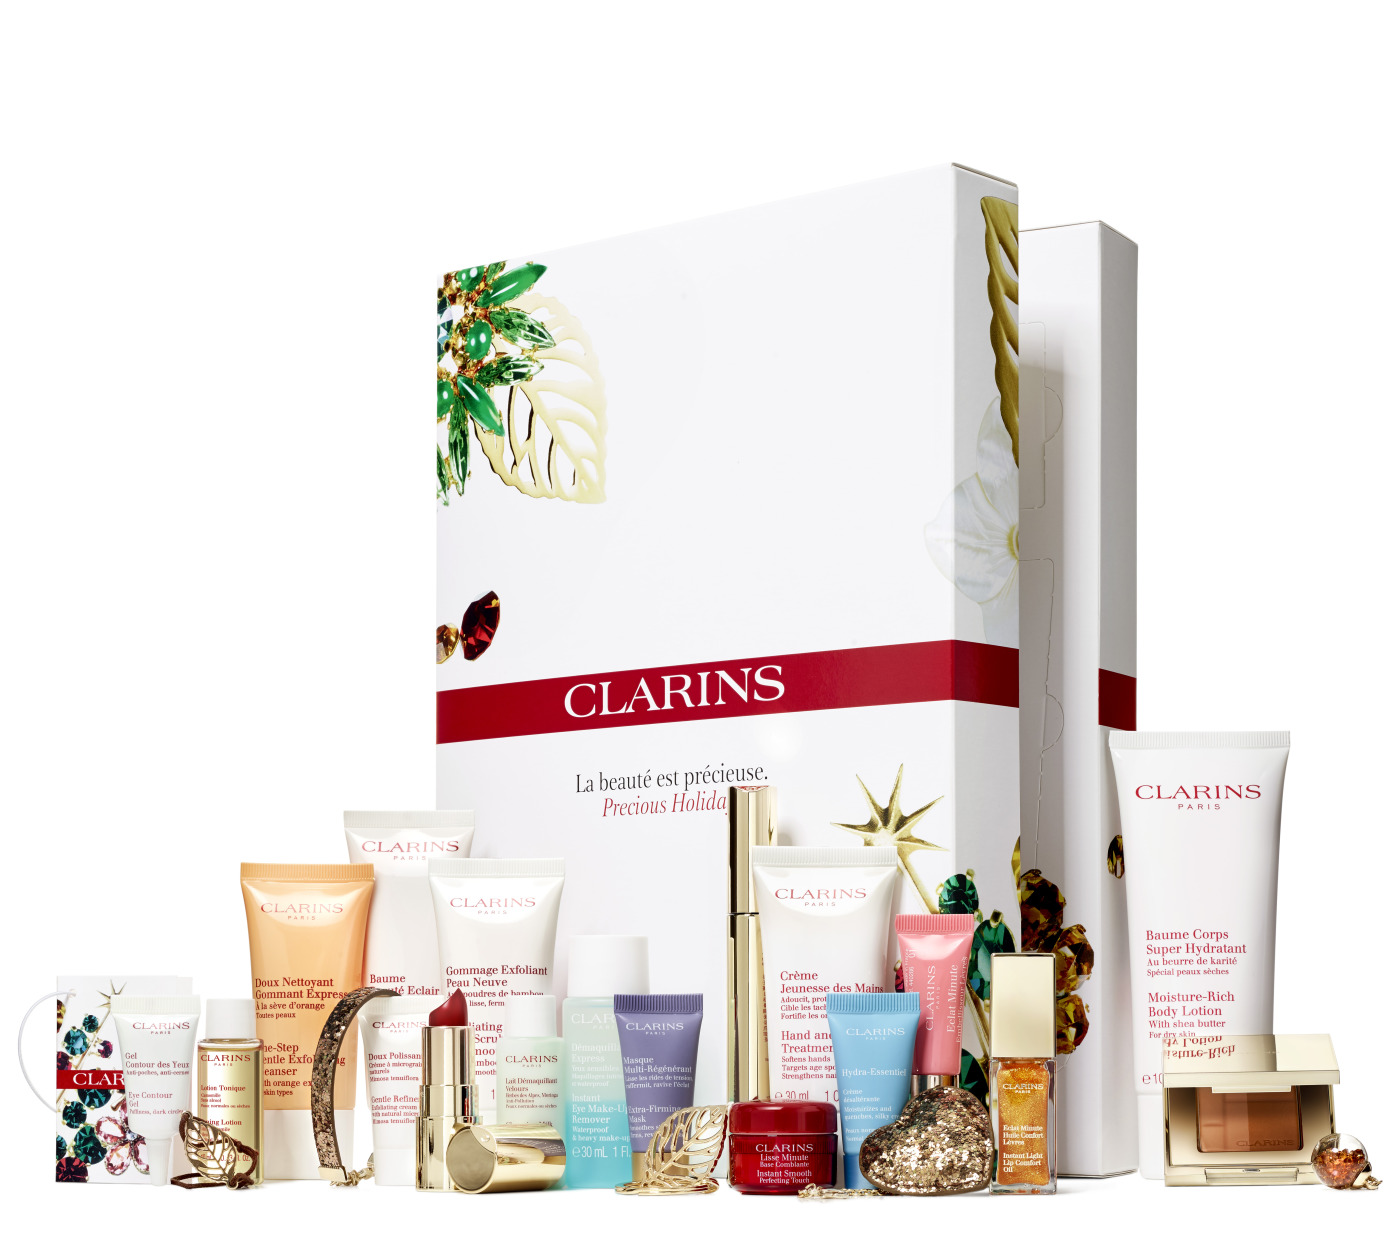 Clarins Advent Calendar 2017.jpg